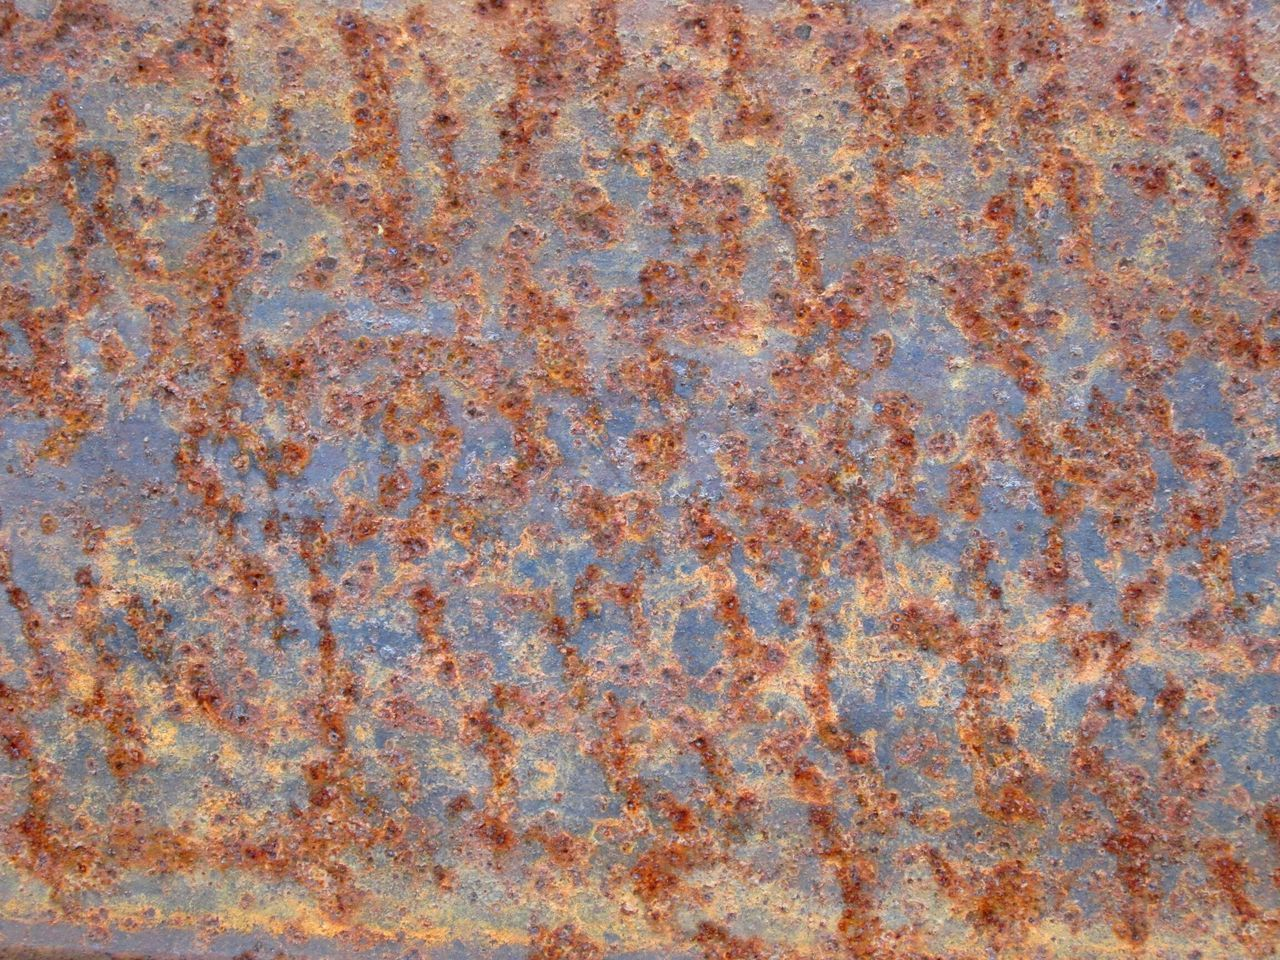 Rusty Metal Textures And Surfaces Background ArchiTexture Blue Brown Orange Grungy Textures Weathered Metal Flat Punctured Perforated Punched Closeupshot Iron Texture